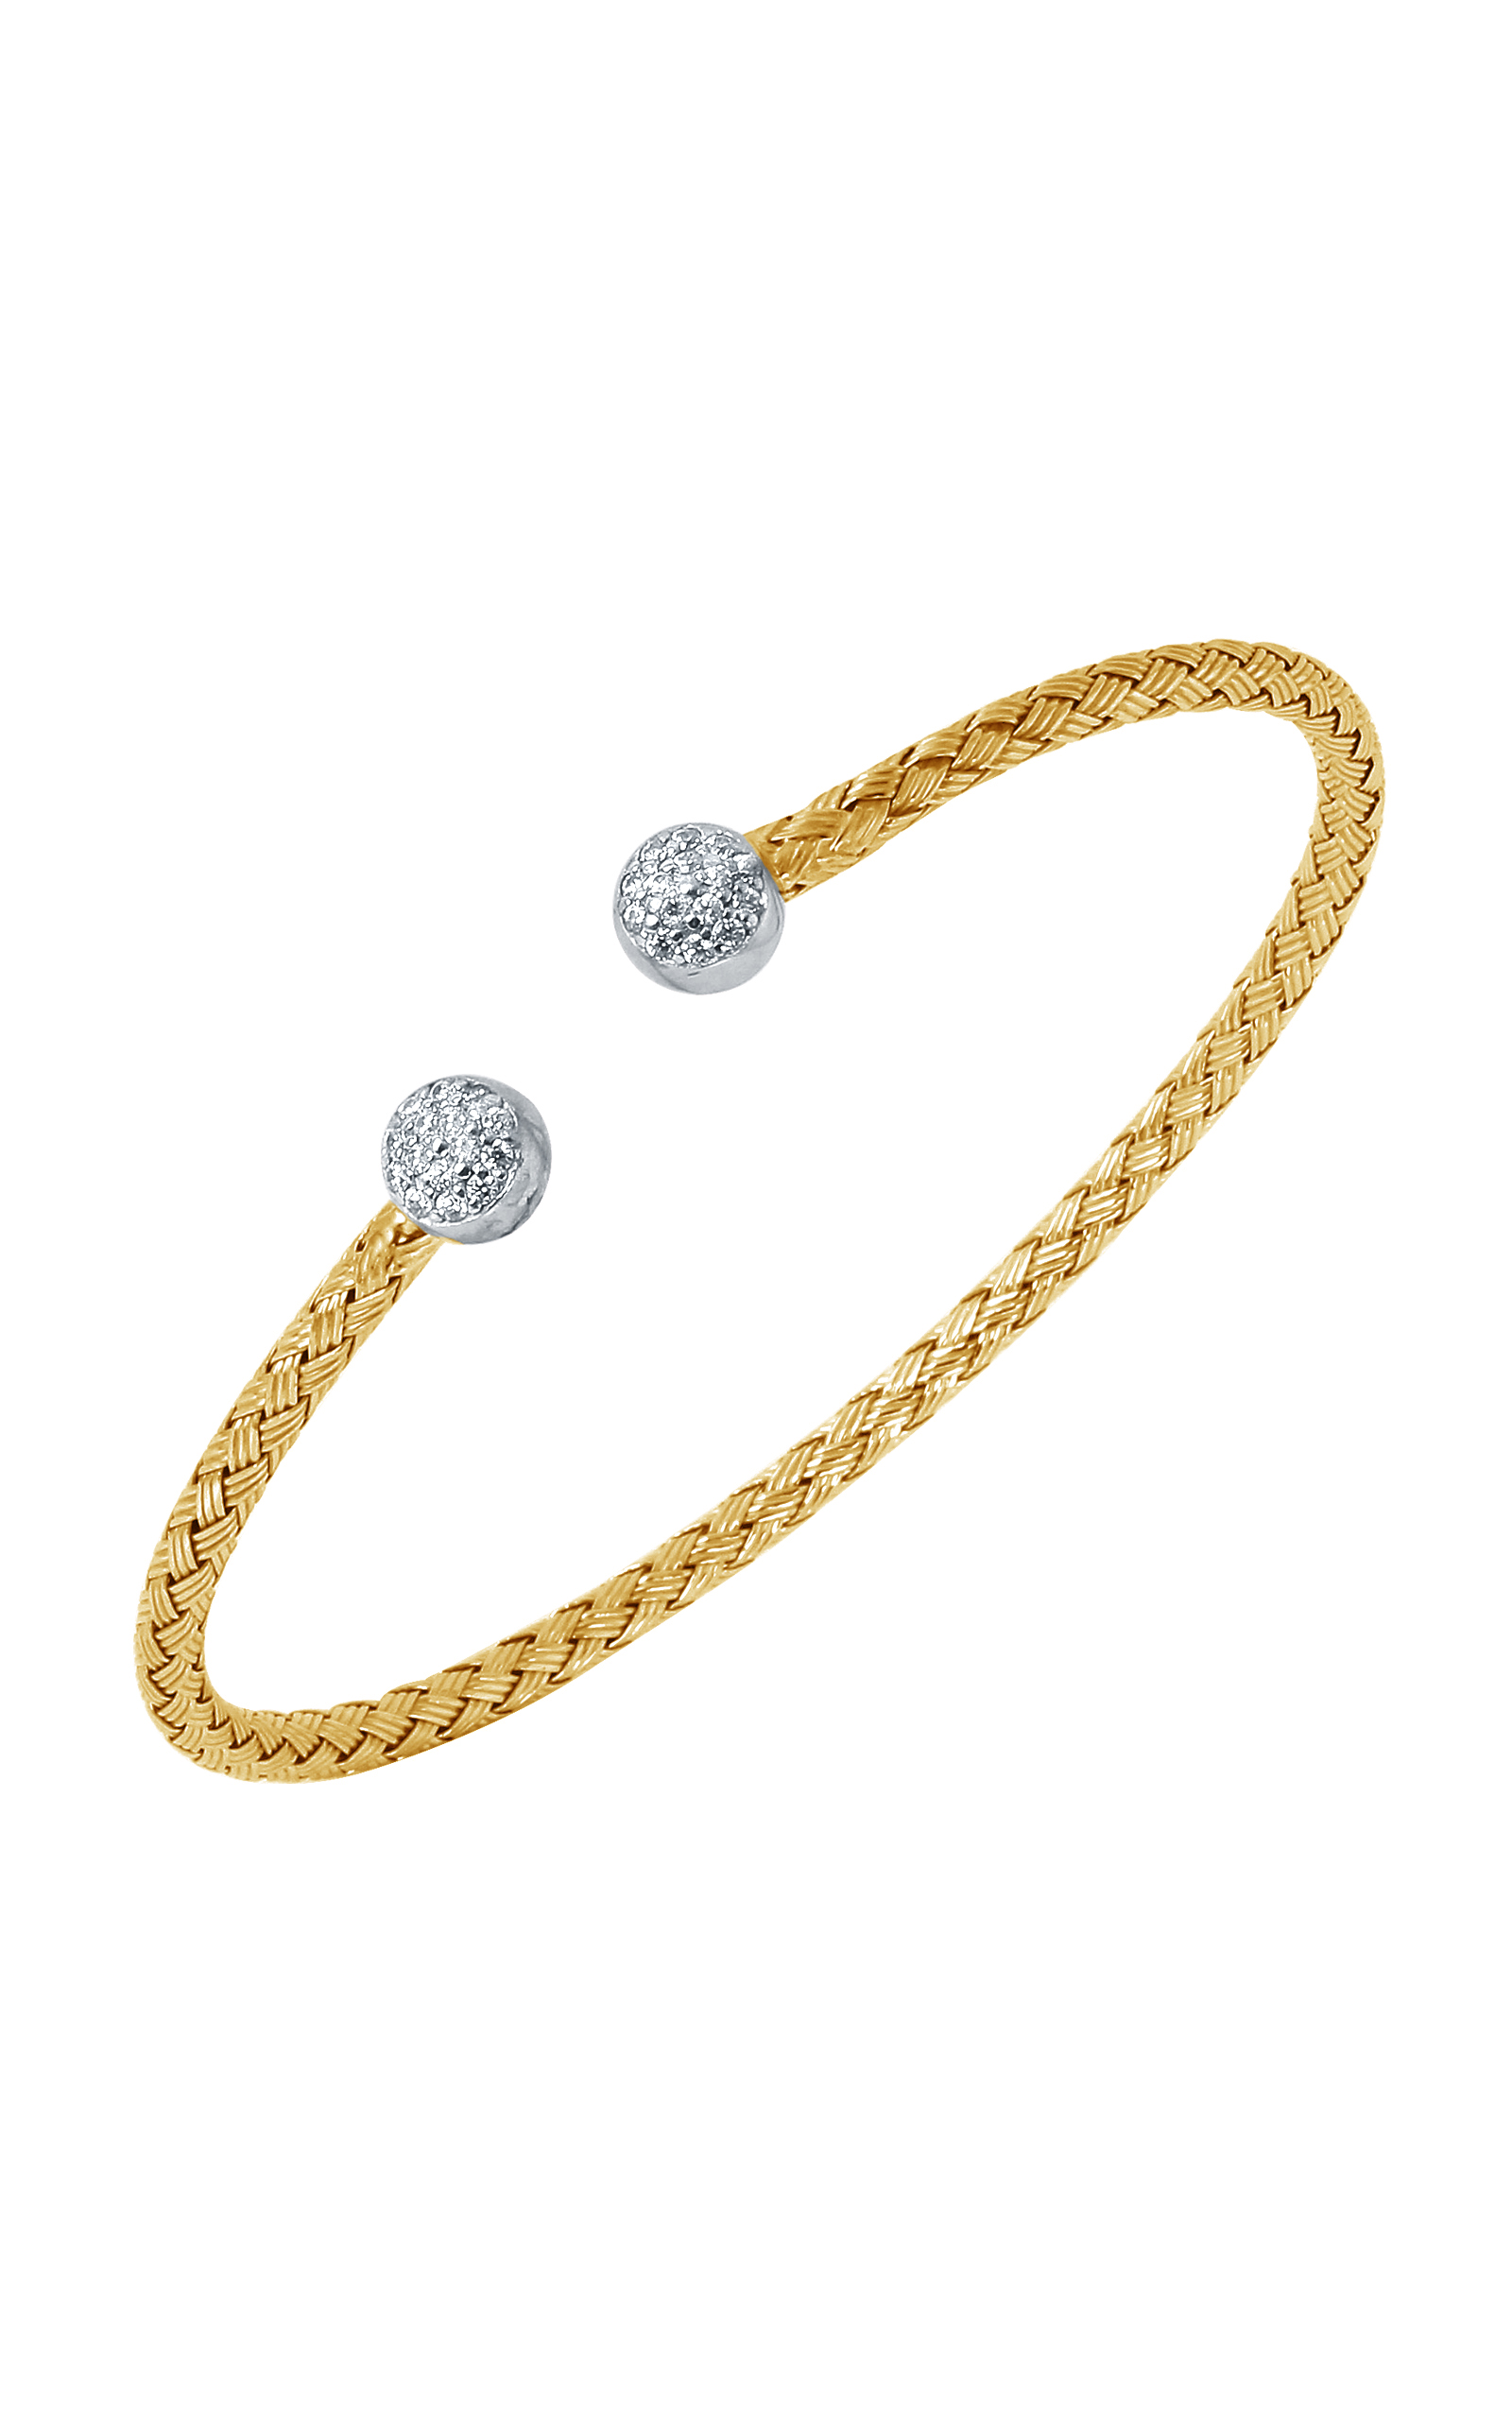 Charles Garnier Bracelets Bracelet Paolo Collection MLC8205YWZ product image